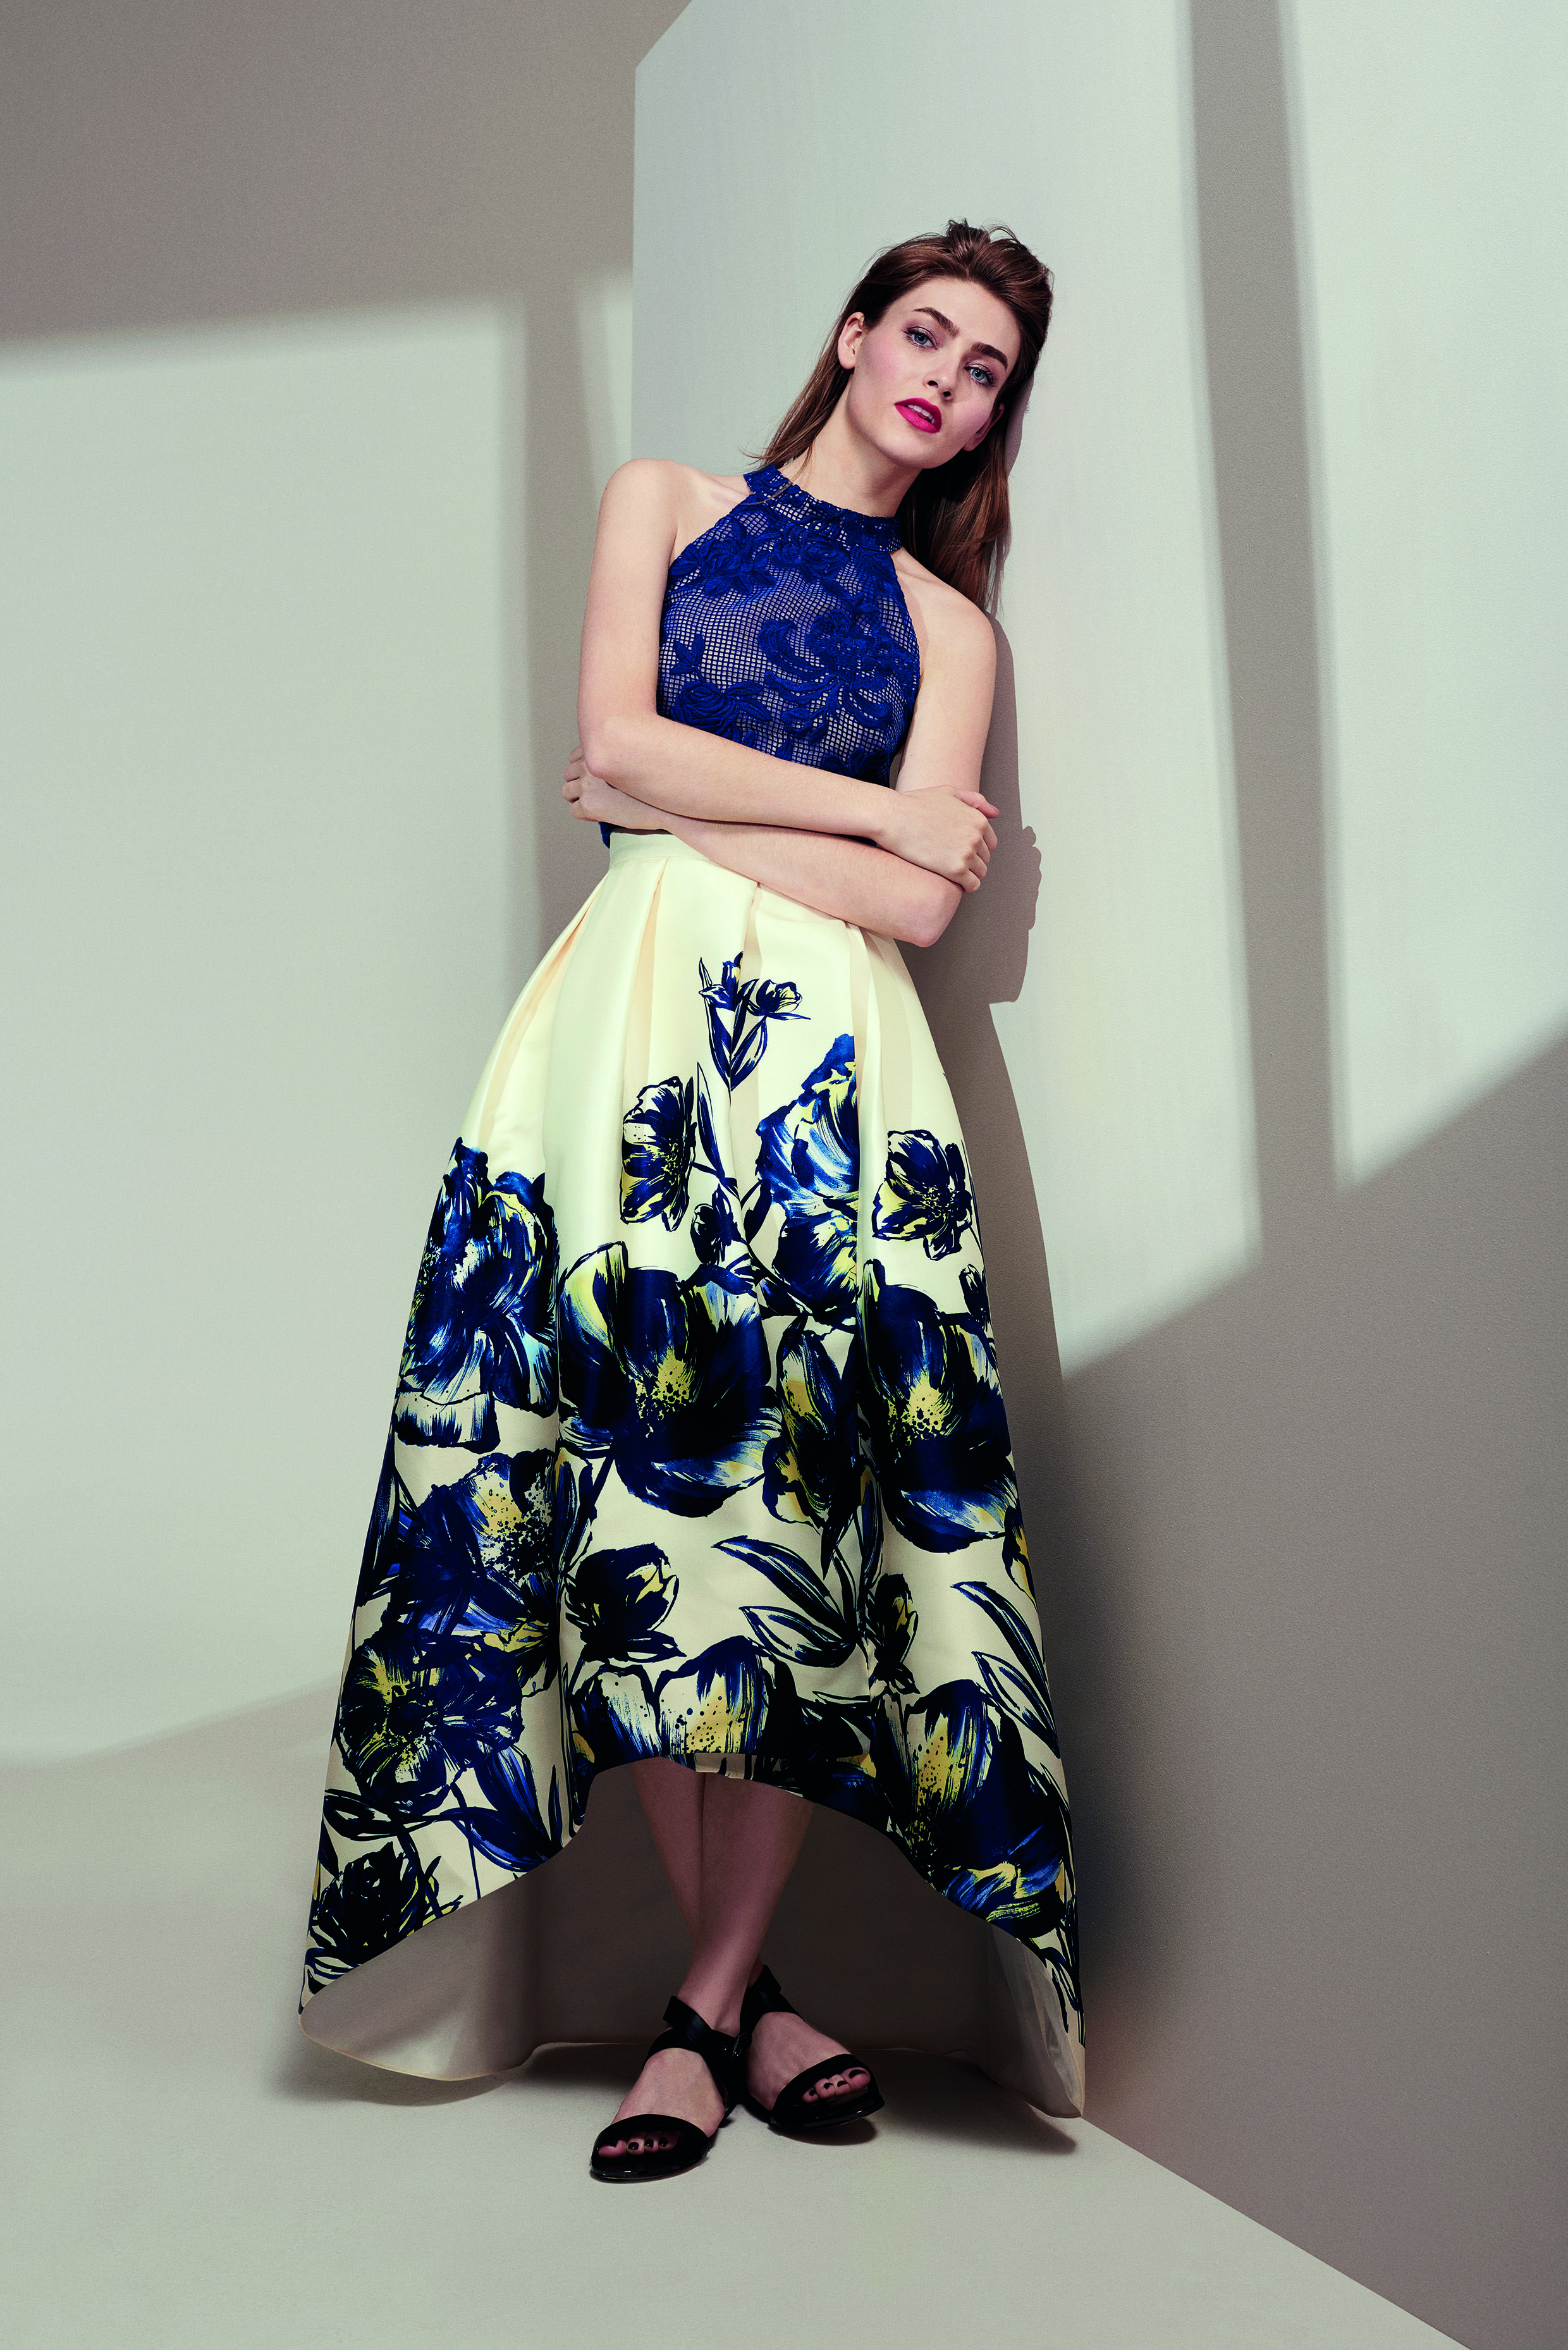 Jcpenney dresses for wedding guest  Trellis Top and Mina Skirt  Coast  Pinterest  Dresses Skirts and